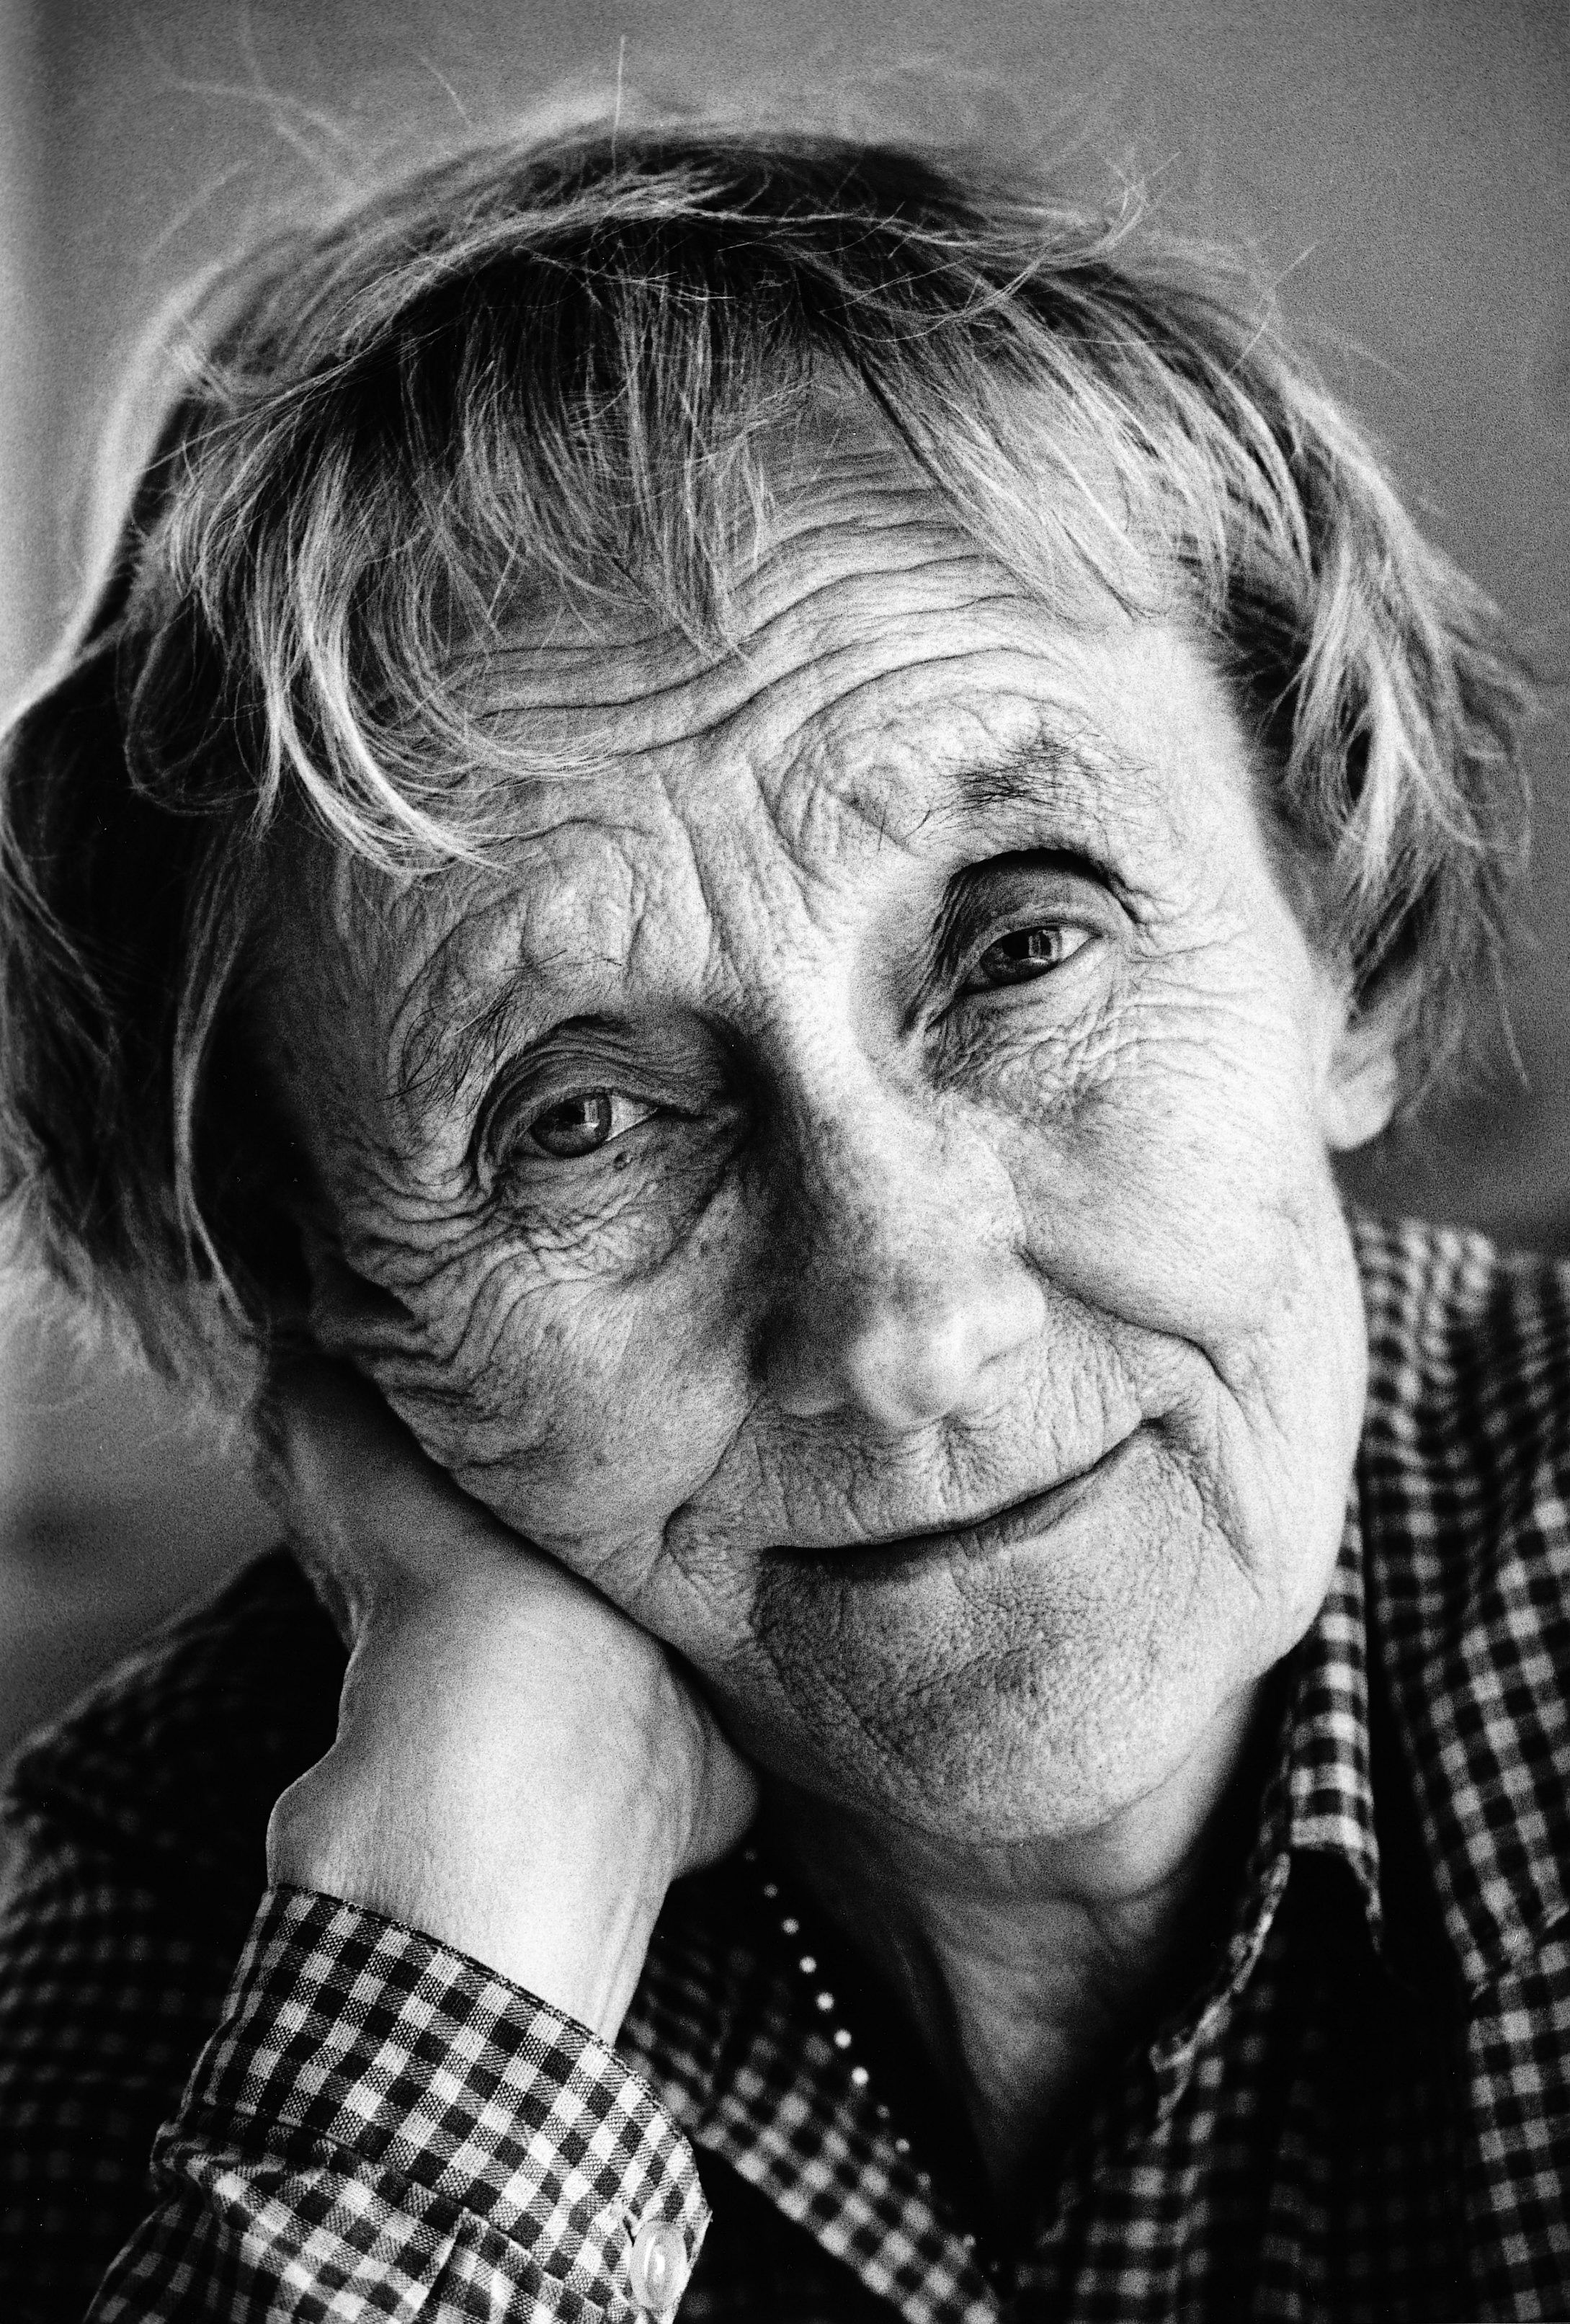 ASTRID LINDGREN, Author, writer. Mother of amongst others: Pippe Langstrømpe, Emil fra Lønneberg etc. Portrait, black and white. You have given so many wonderfull memories and will not ever be forgotten.